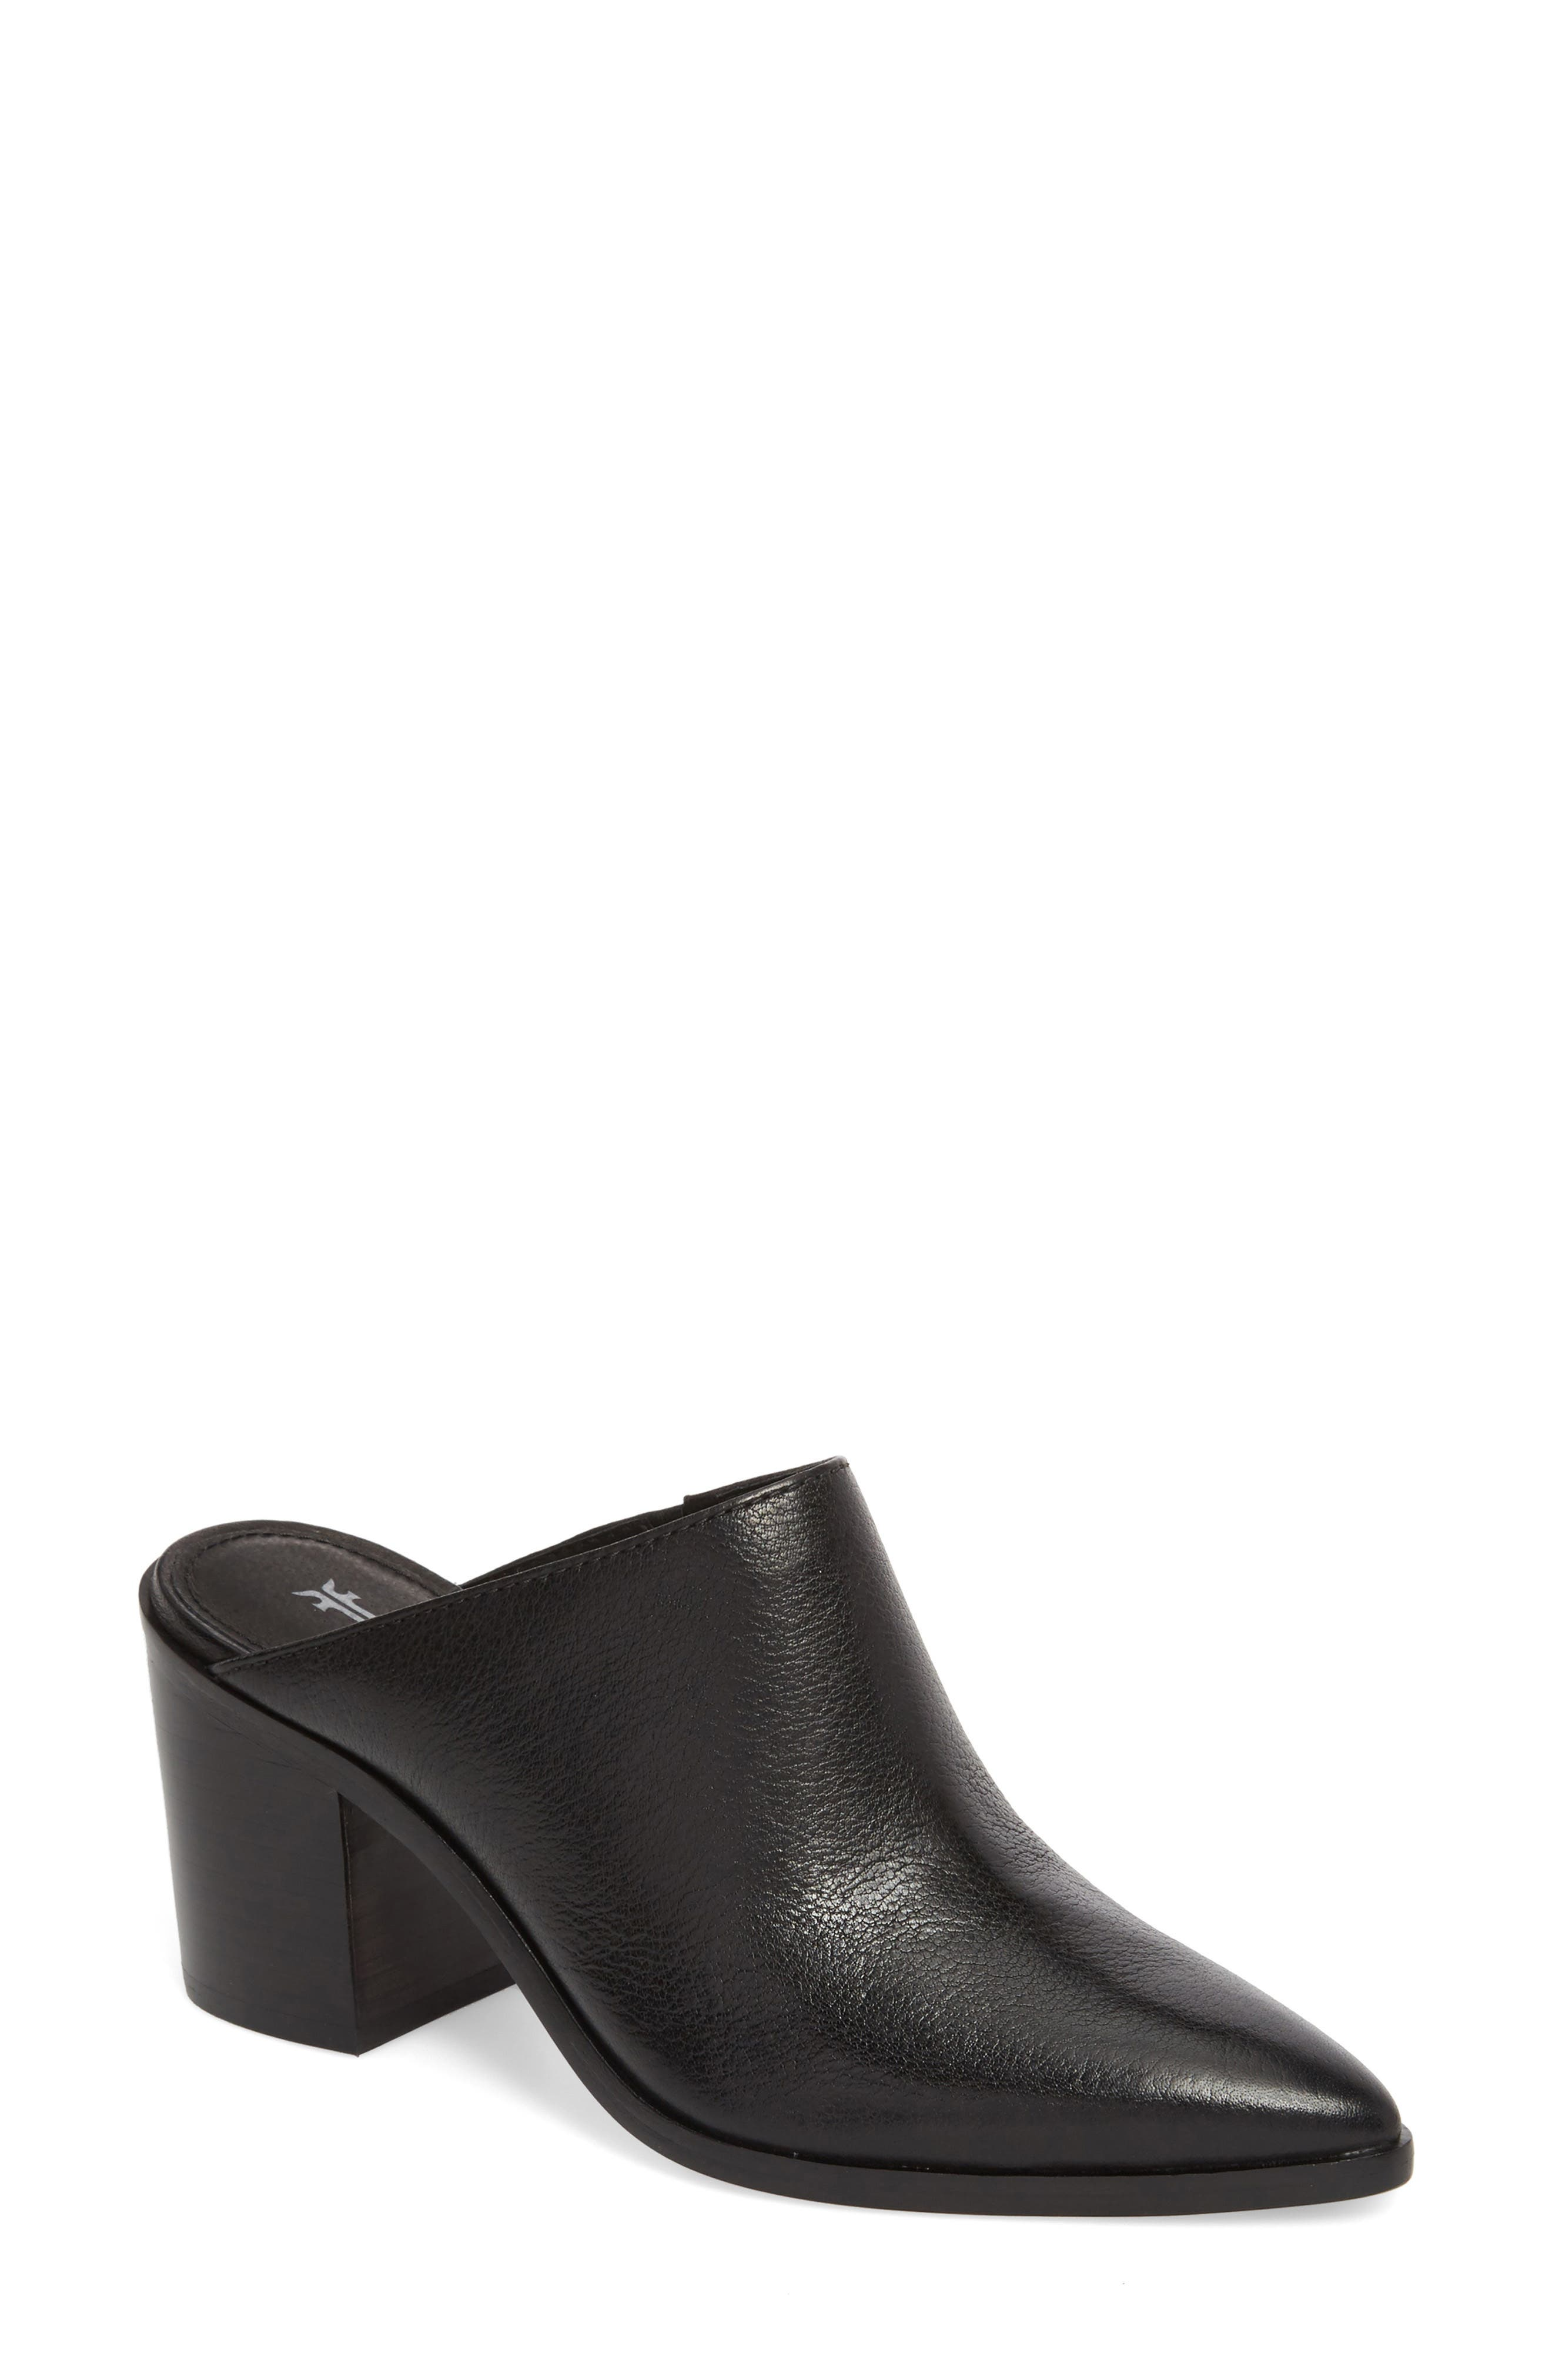 Flynn Mule,                         Main,                         color, Black Leather